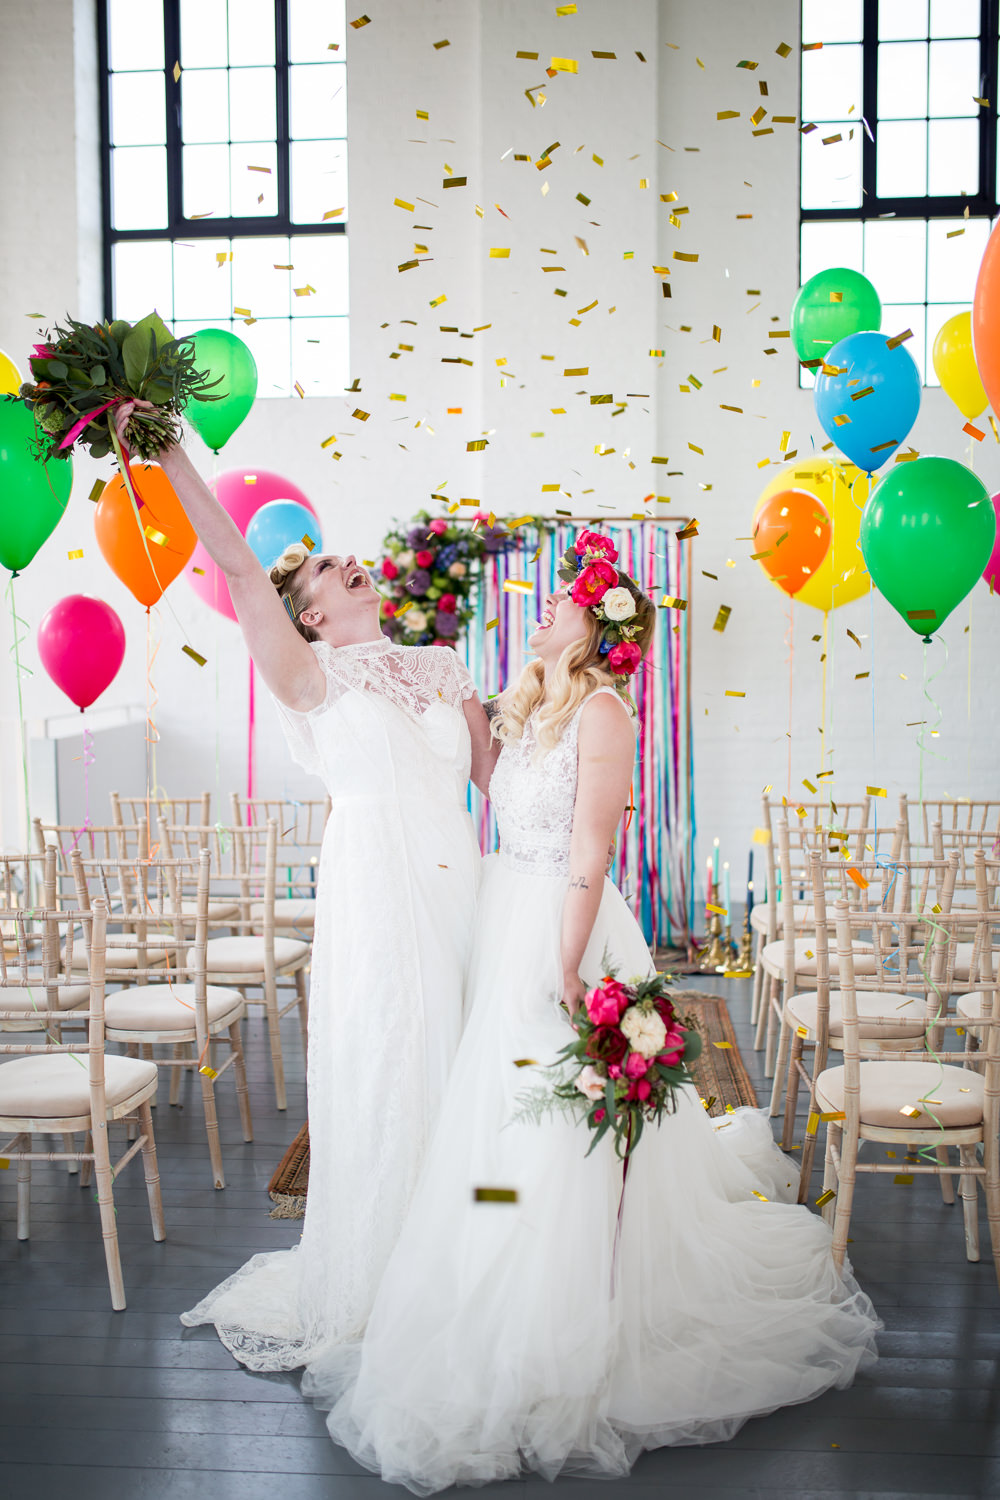 Confetti Colourful Balloons Wedding Ideas Florence Berry Photography